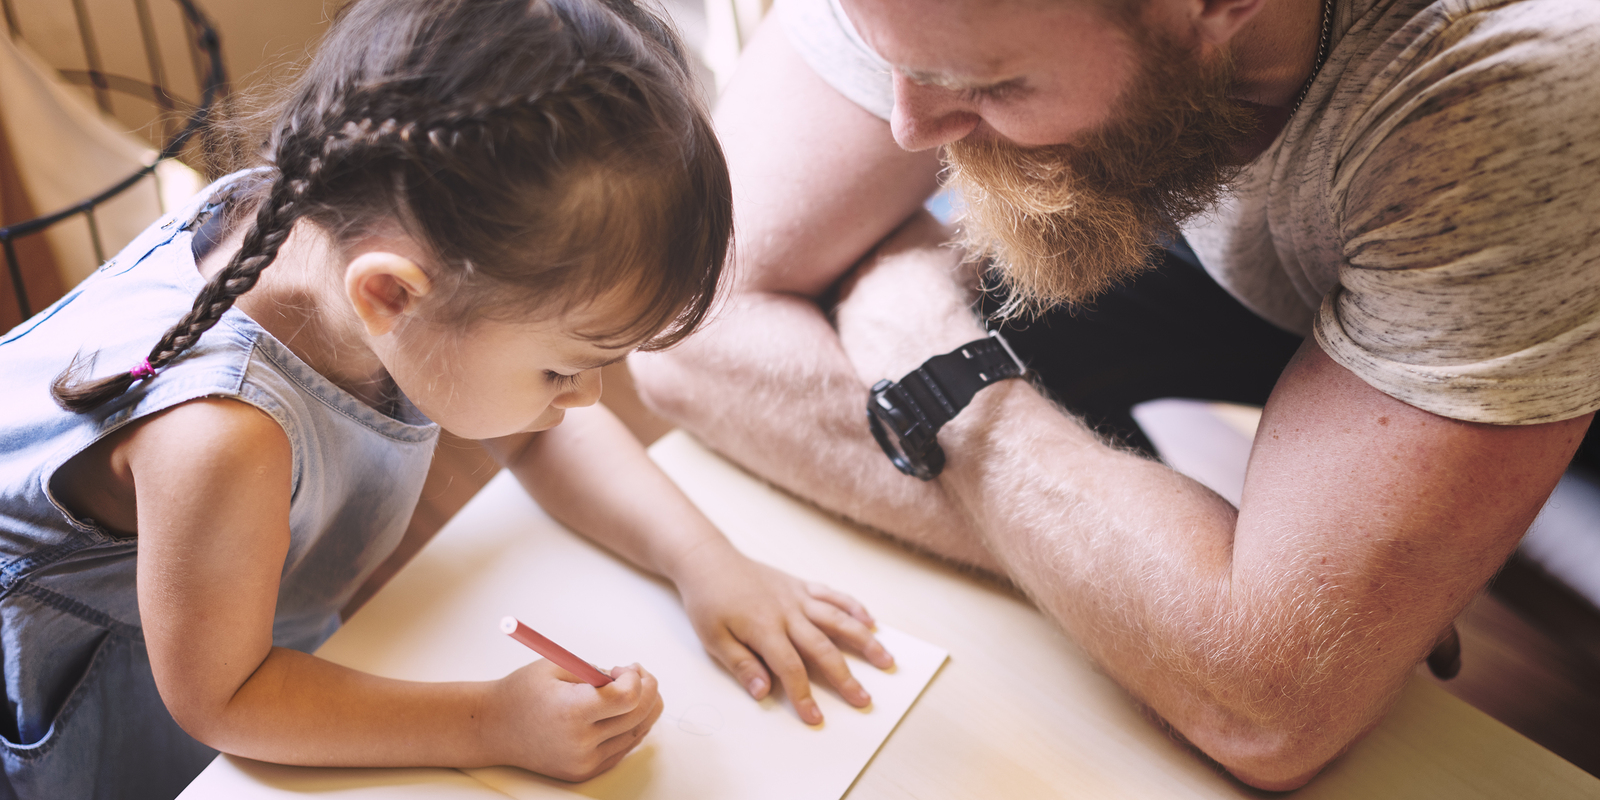 5 Things Single Dads Want You to Know